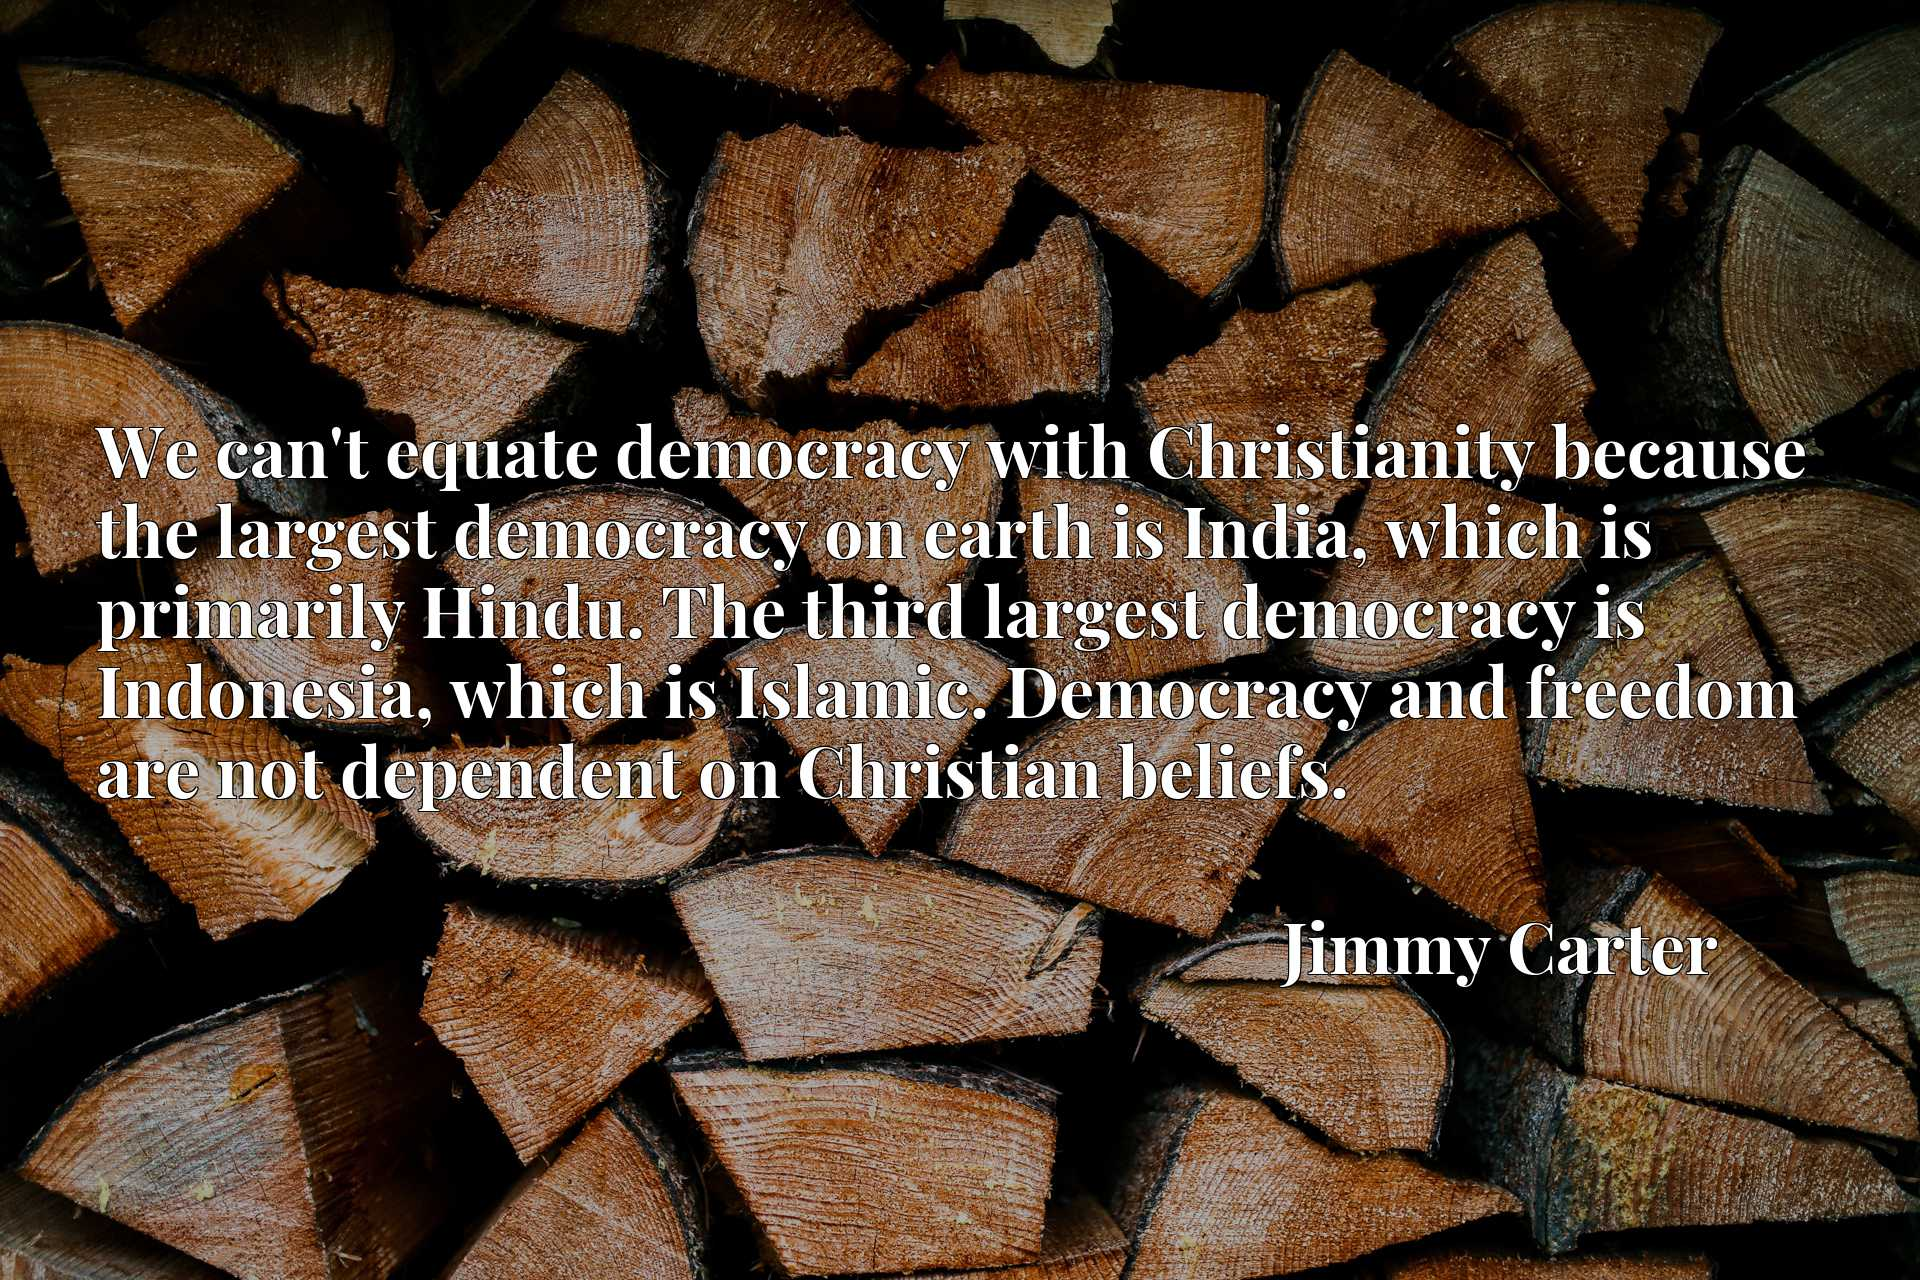 We can't equate democracy with Christianity because the largest democracy on earth is India, which is primarily Hindu. The third largest democracy is Indonesia, which is Islamic. Democracy and freedom are not dependent on Christian beliefs.